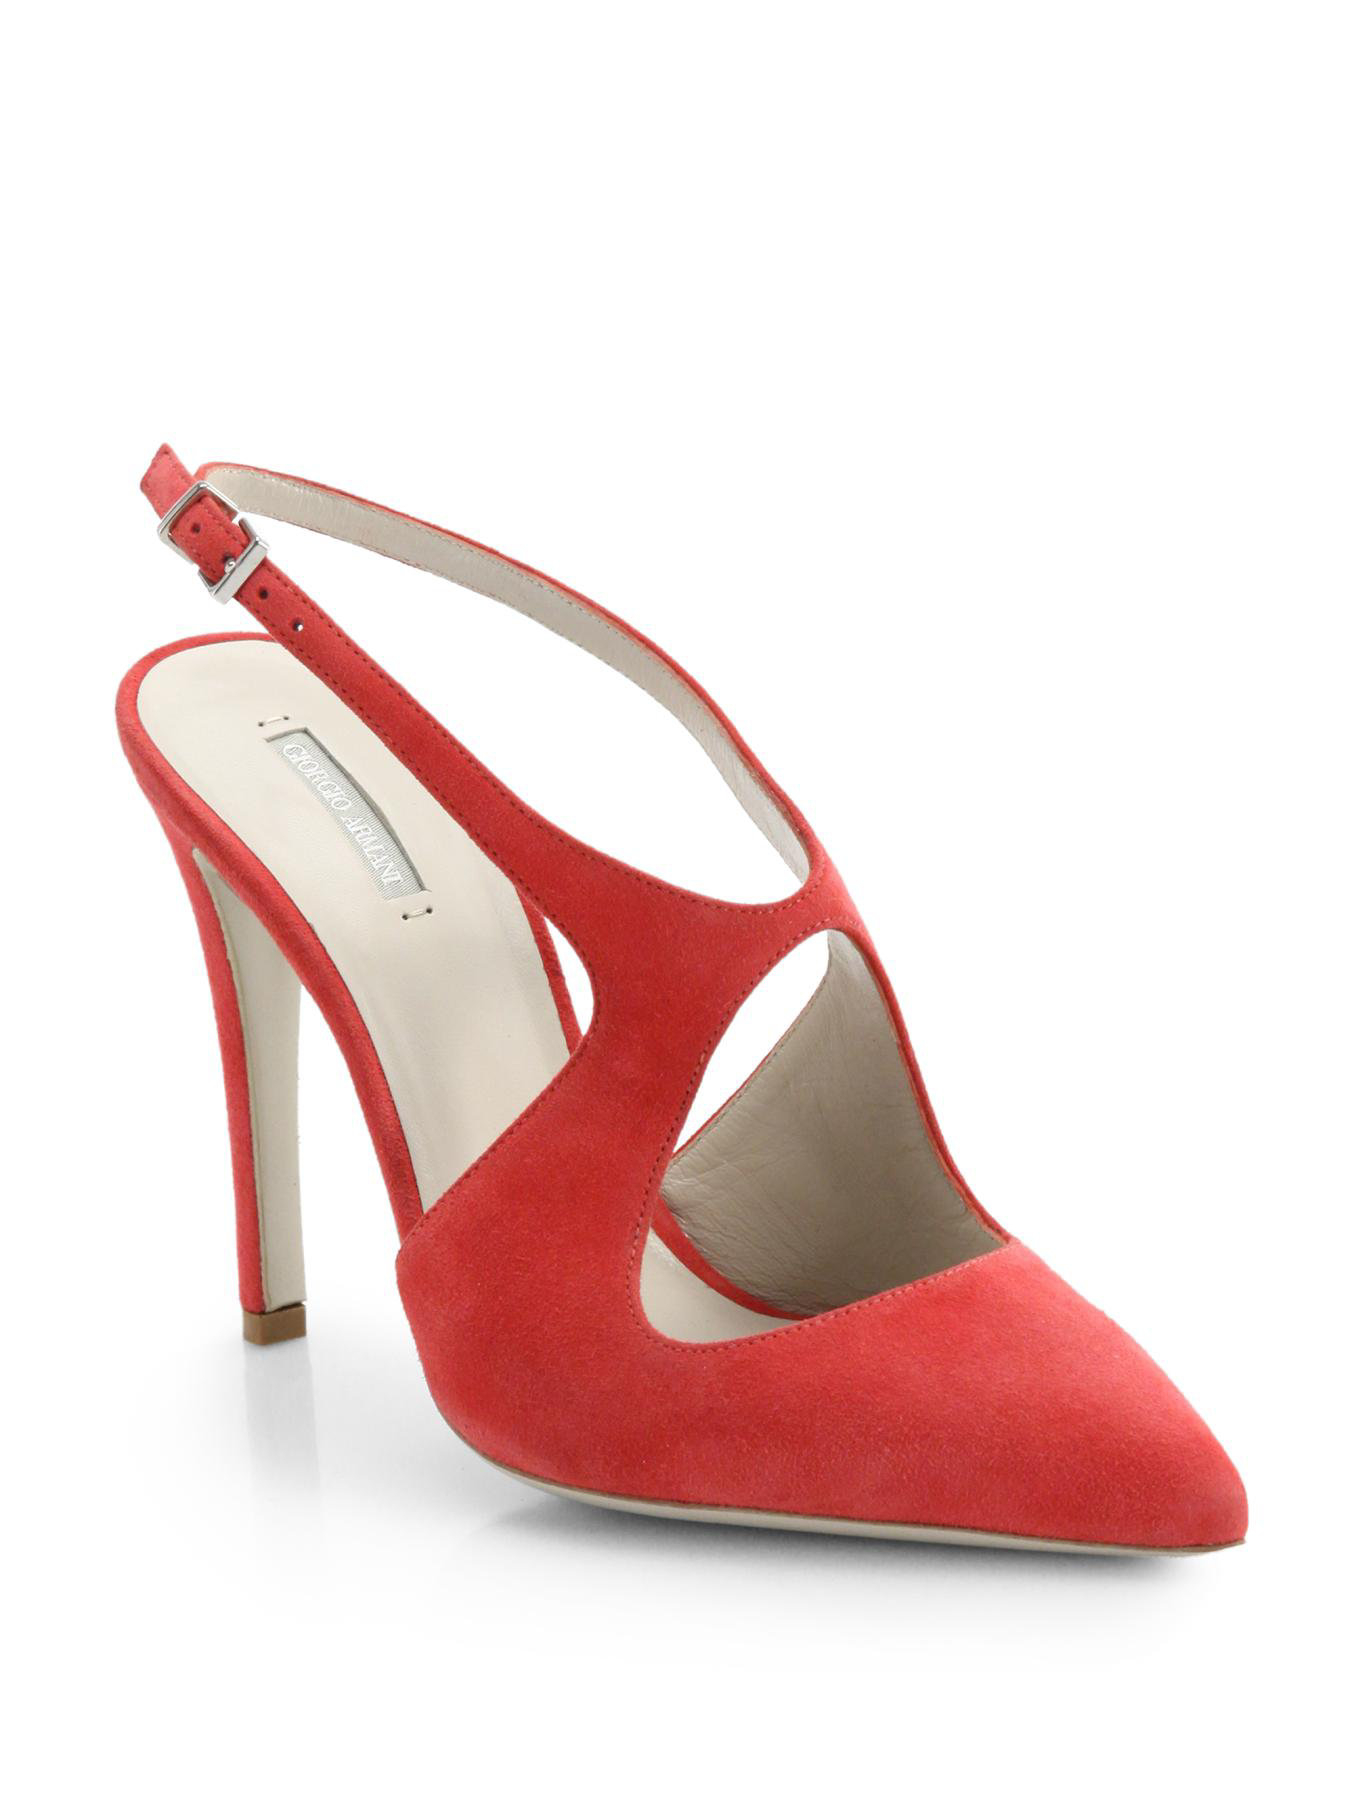 0ccbcec251fe Lyst - Giorgio Armani Suede Cutout Slingback Pumps in Pink